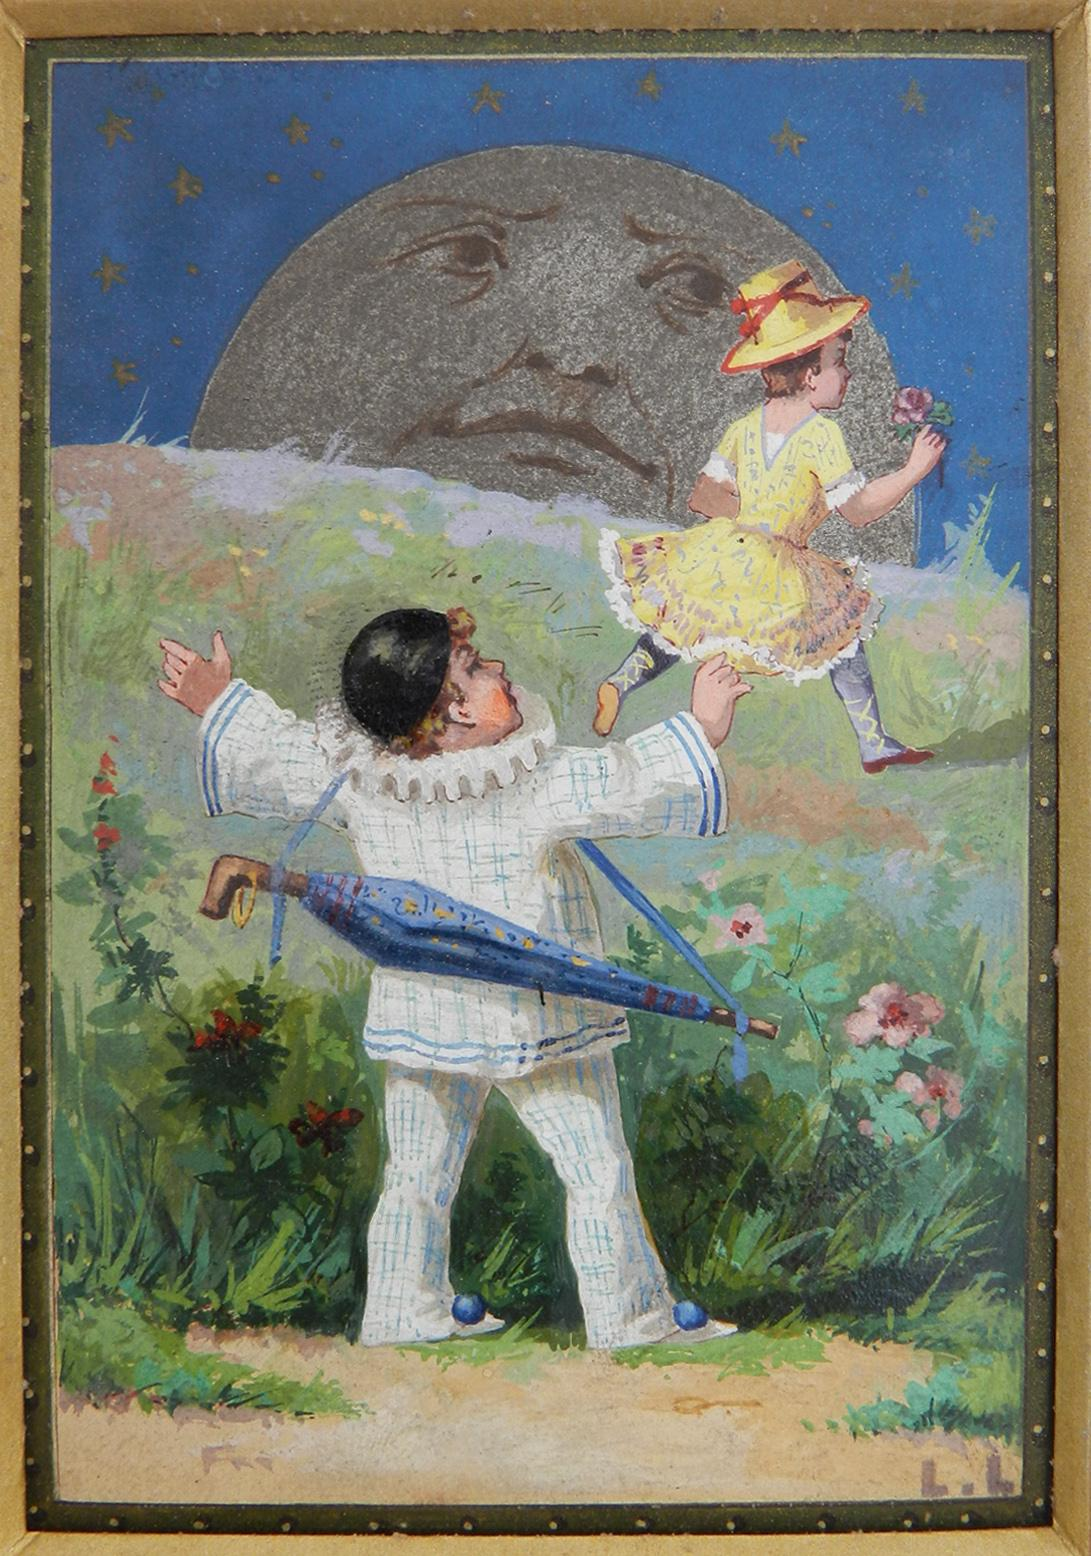 Oil Painting Pierrot, Colombine and the Moon by Luigi Loir Belle Epoque